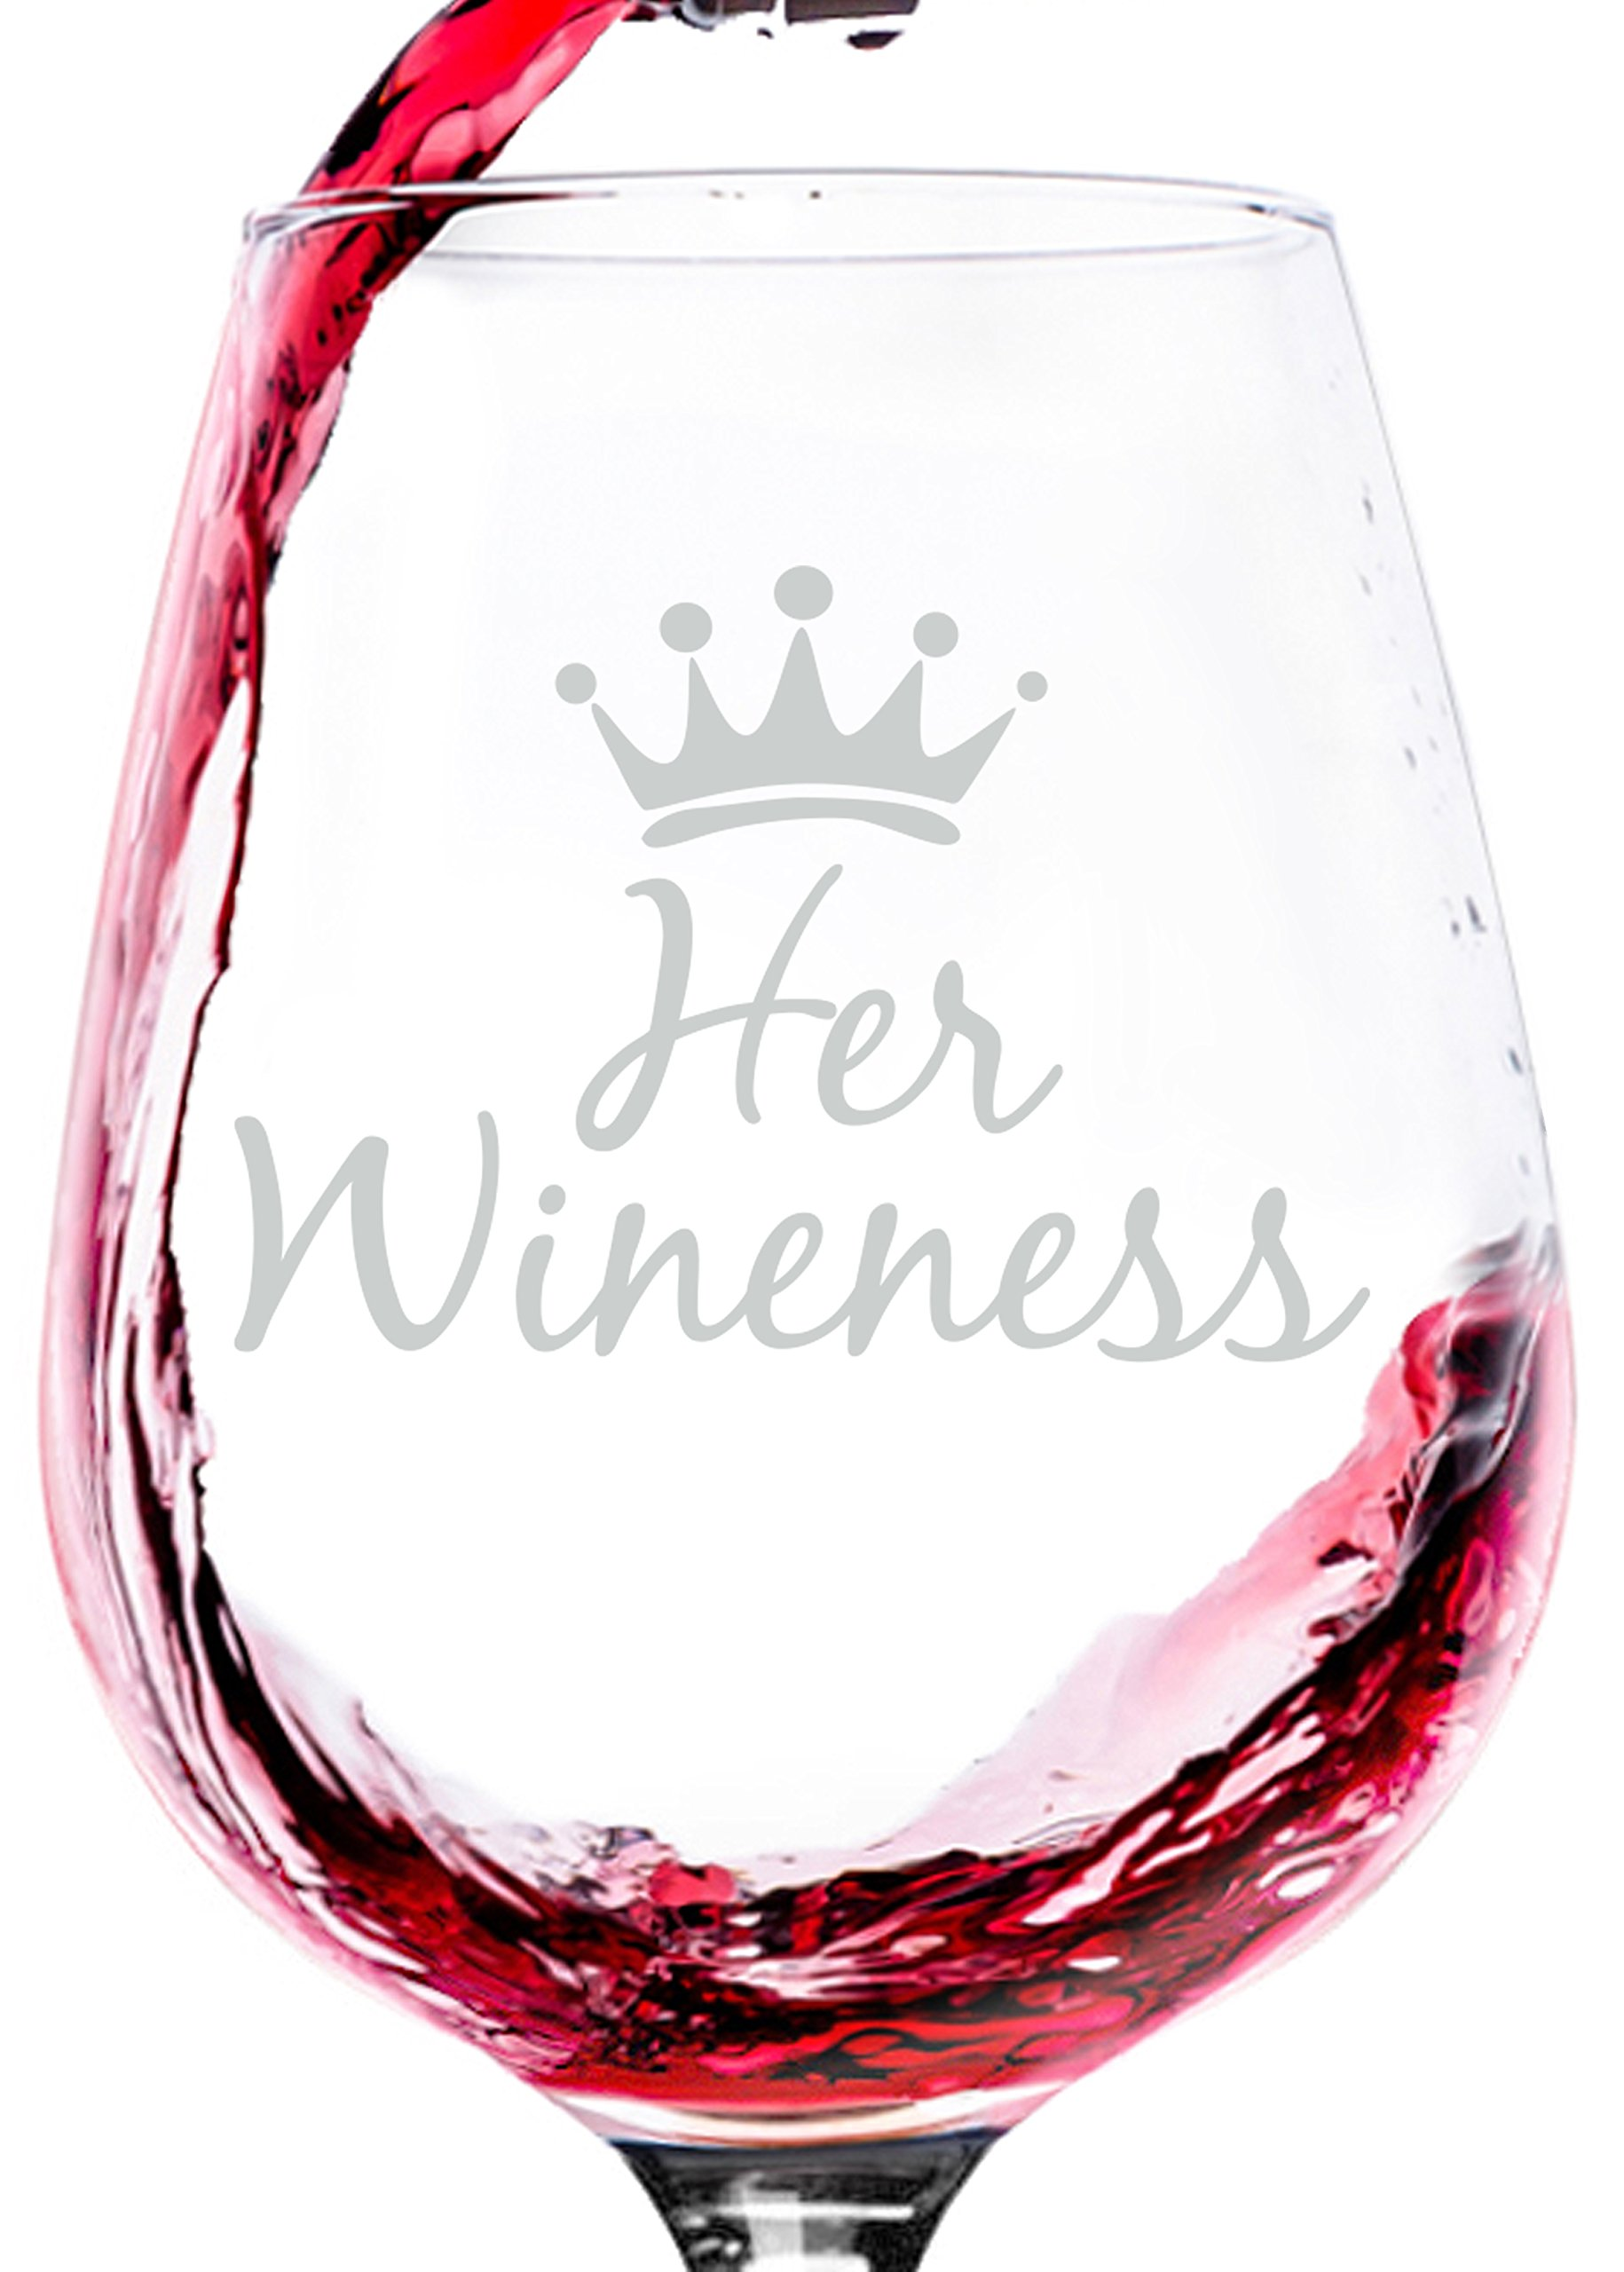 Her Wineness Funny Queen Wine Glass - Best Birthday Gifts For Mom - Unique Gift For Women, Her - Cool Mothers Day Present Idea From Husband, Son or Daughter - Fun Novelty Glass For a Wife or Friend